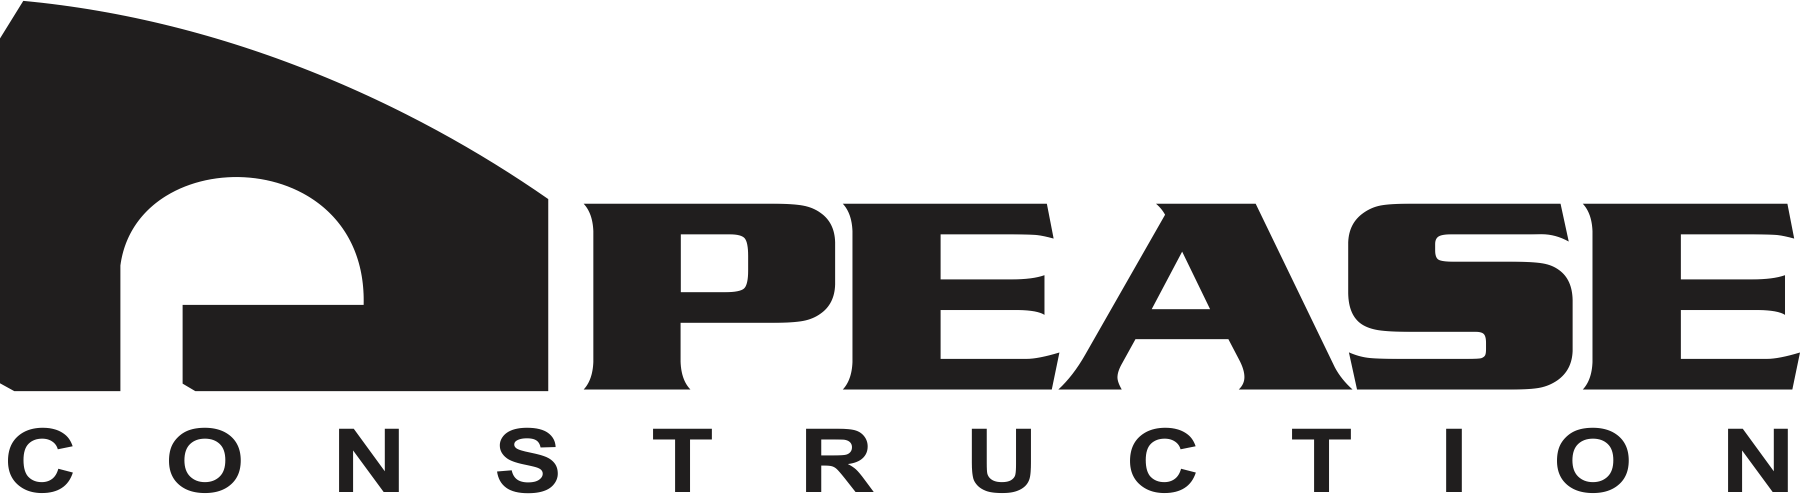 Pease Construction